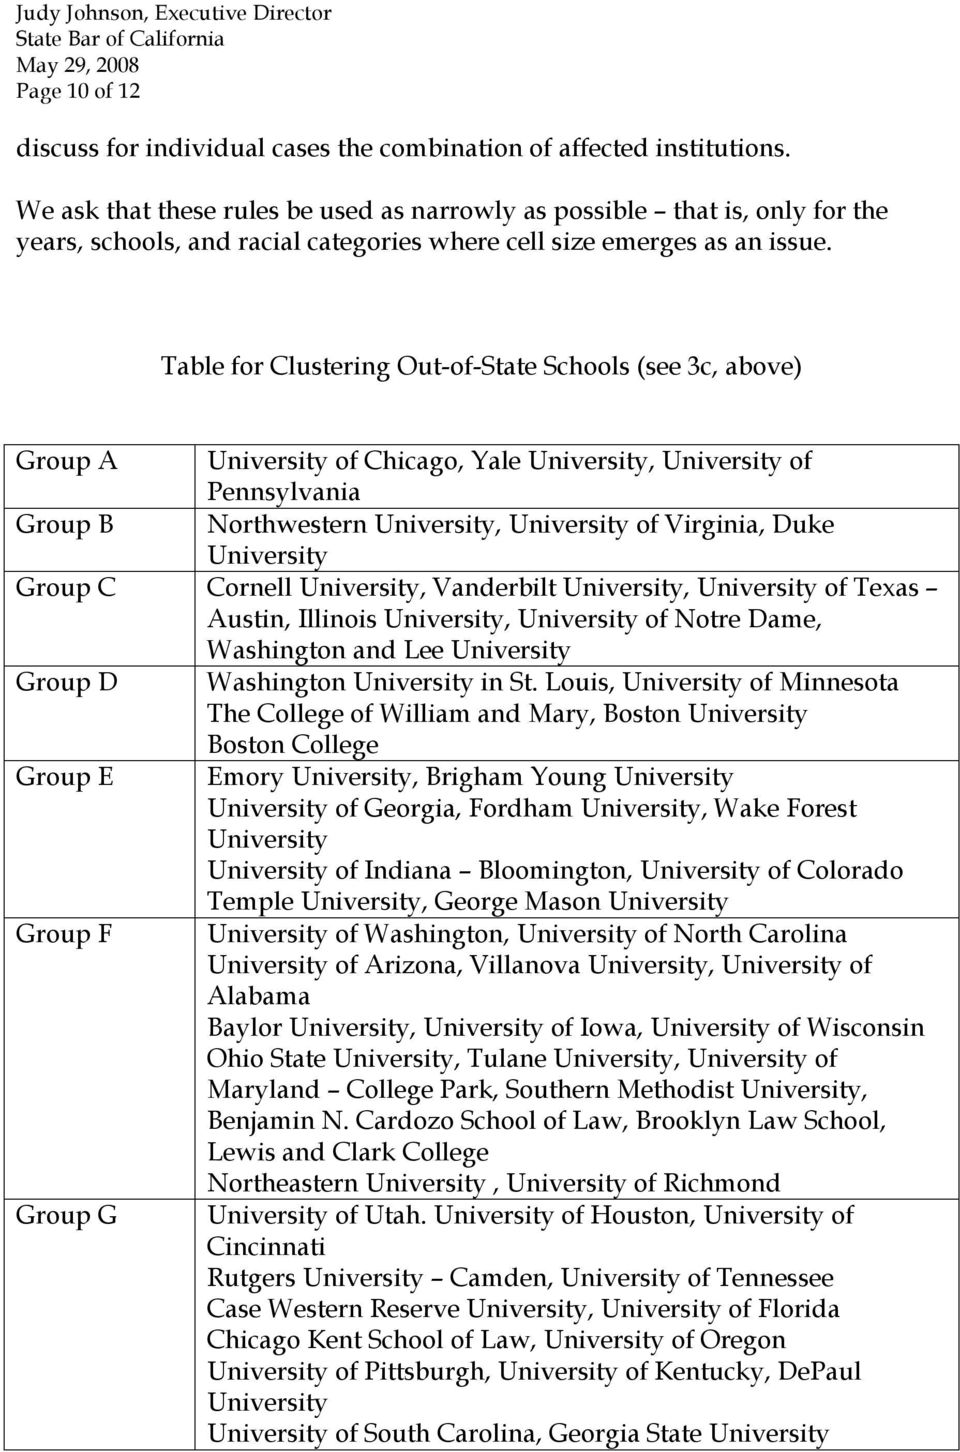 Table for Clustering Out-of-State Schools (see 3c, above) Group A of Chicago, Yale, of Pennsylvania Group B Northwestern, of Virginia, Duke Group C Cornell, Vanderbilt, of Texas Austin, Illinois, of